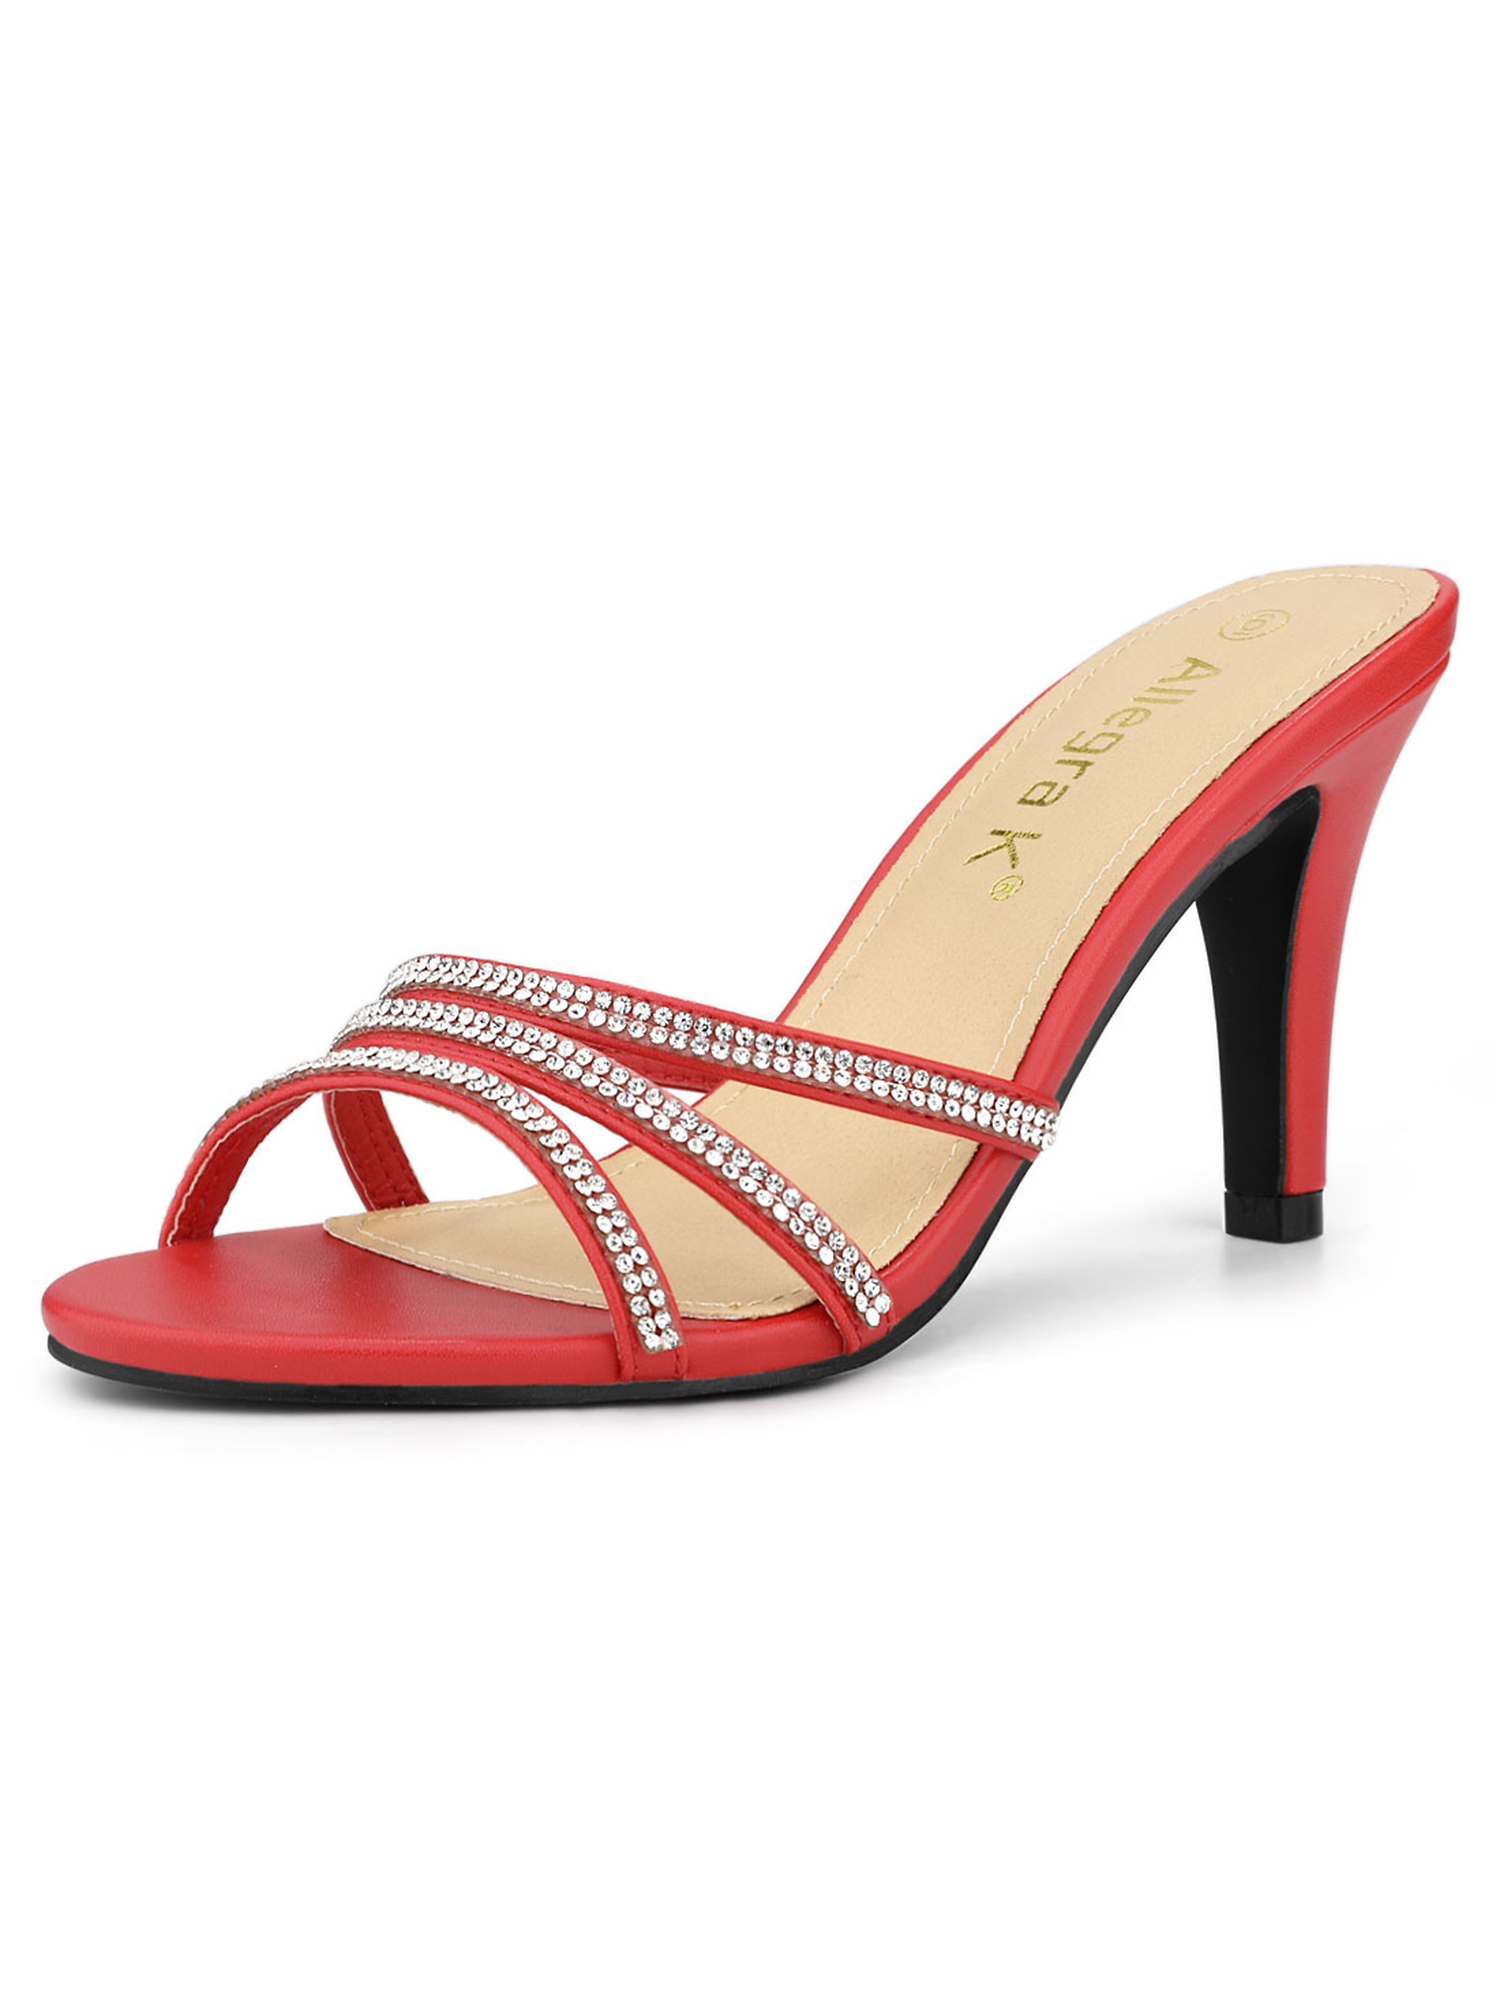 Women's Rhinestone  Strappy Heel Red Mules - 6 M US